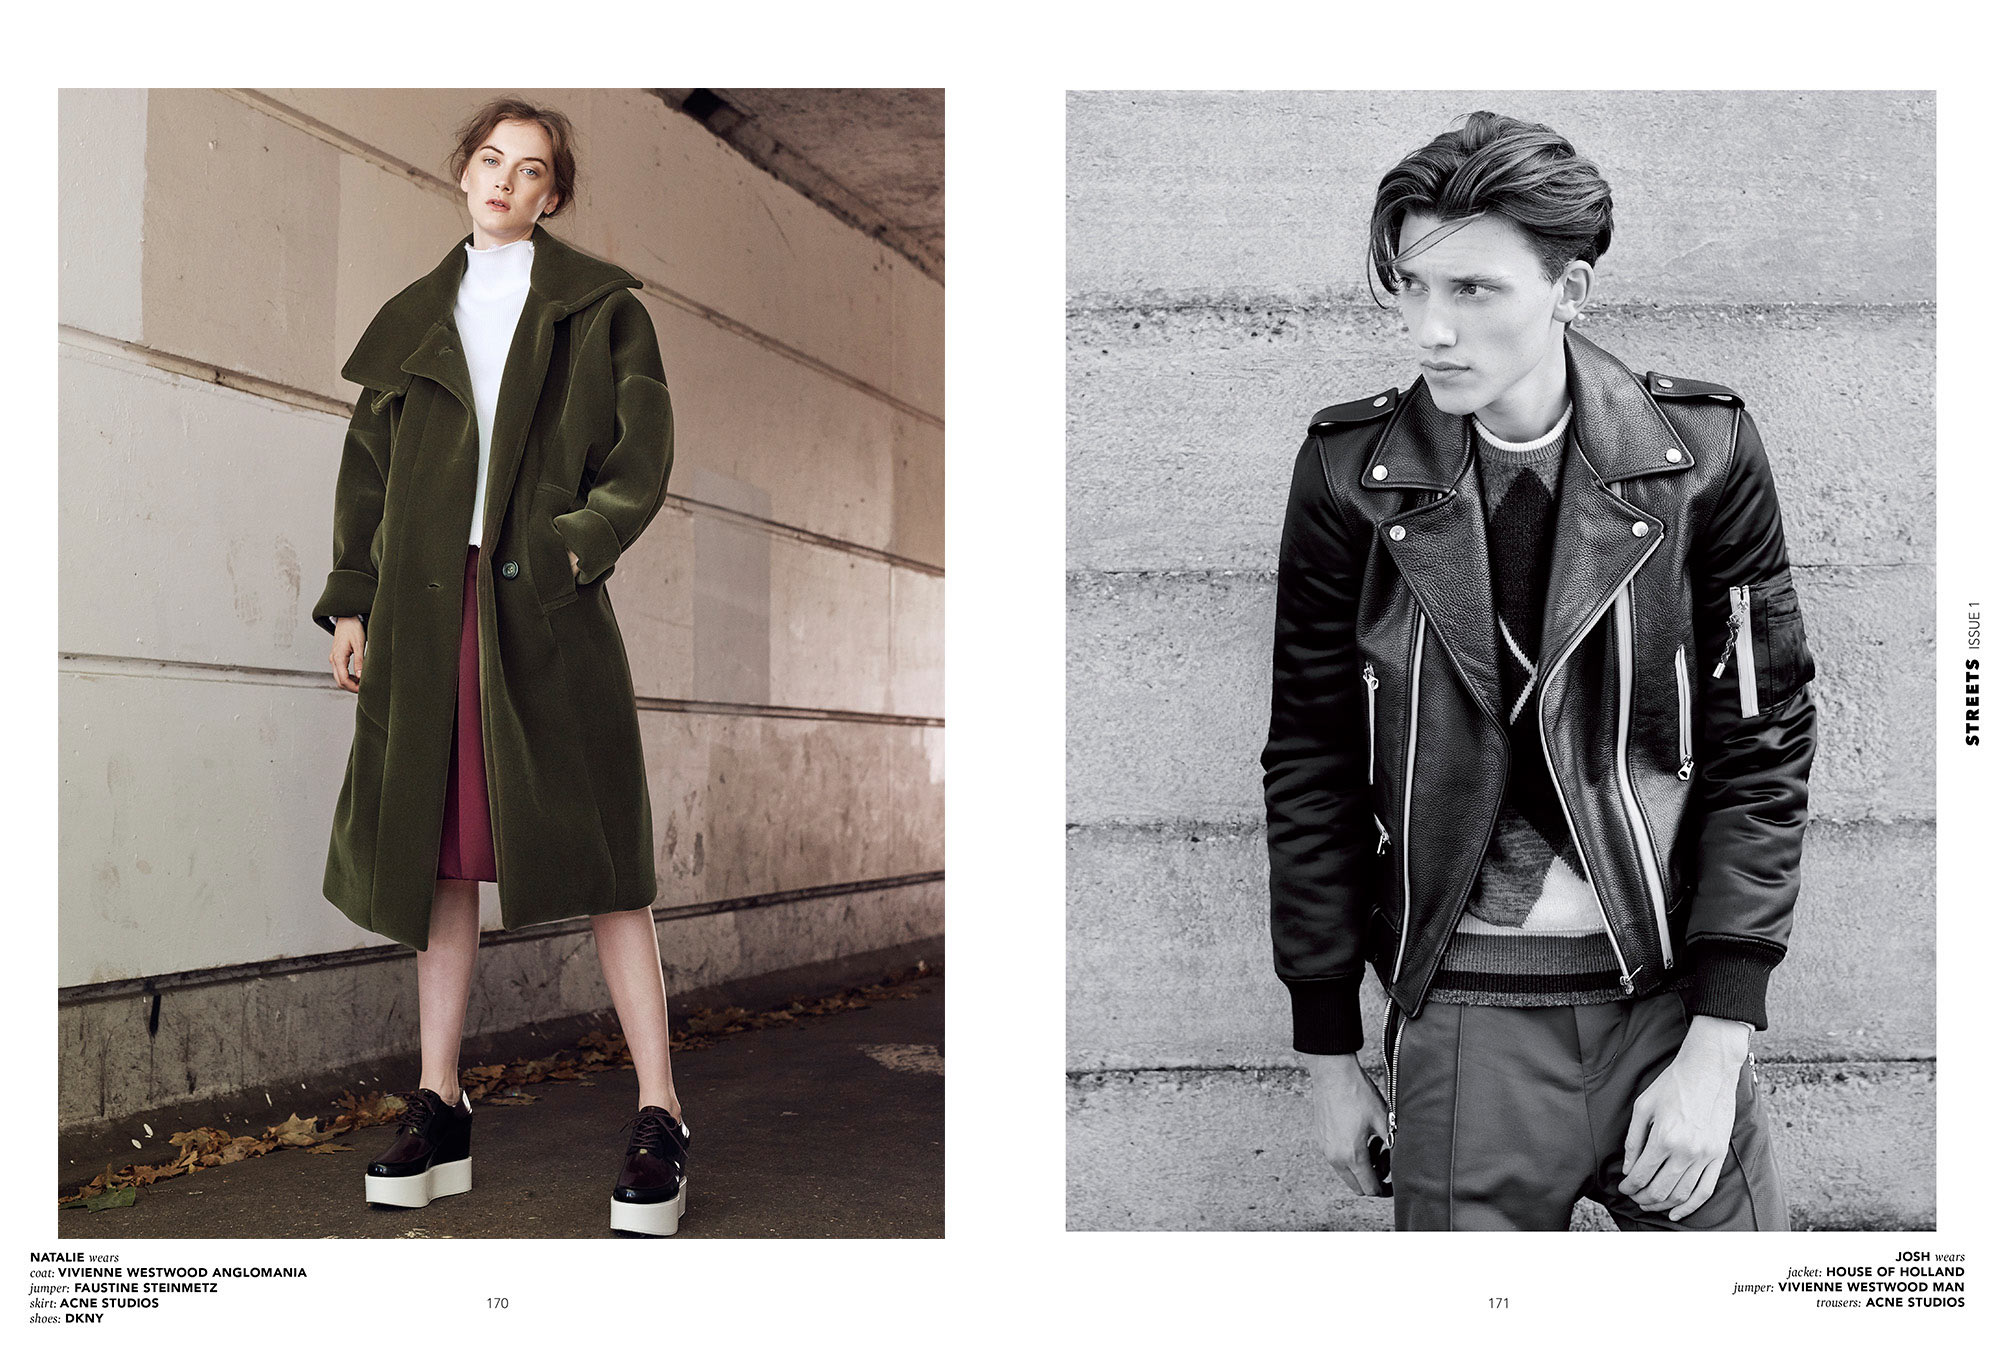 Florian renner streets mag aw15 02